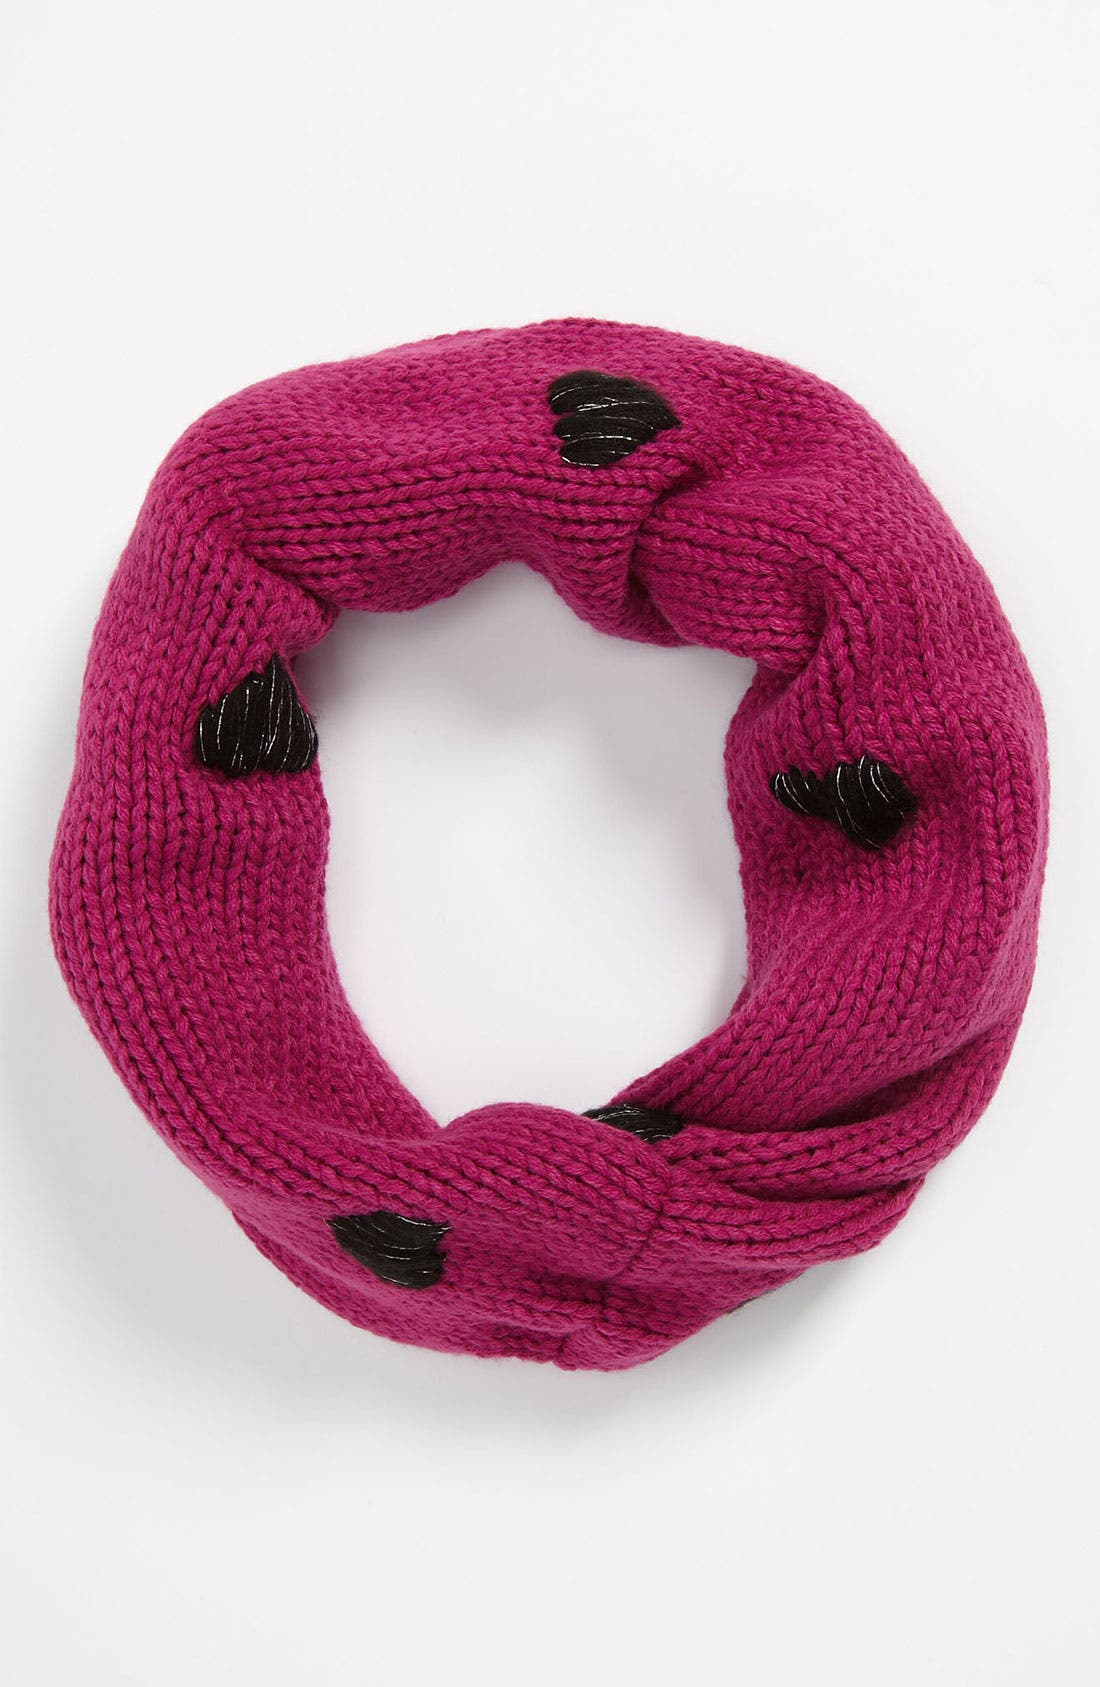 Alternate Image 1 Selected - Peace of Cake 'Heart' Infinity Scarf (Girls)